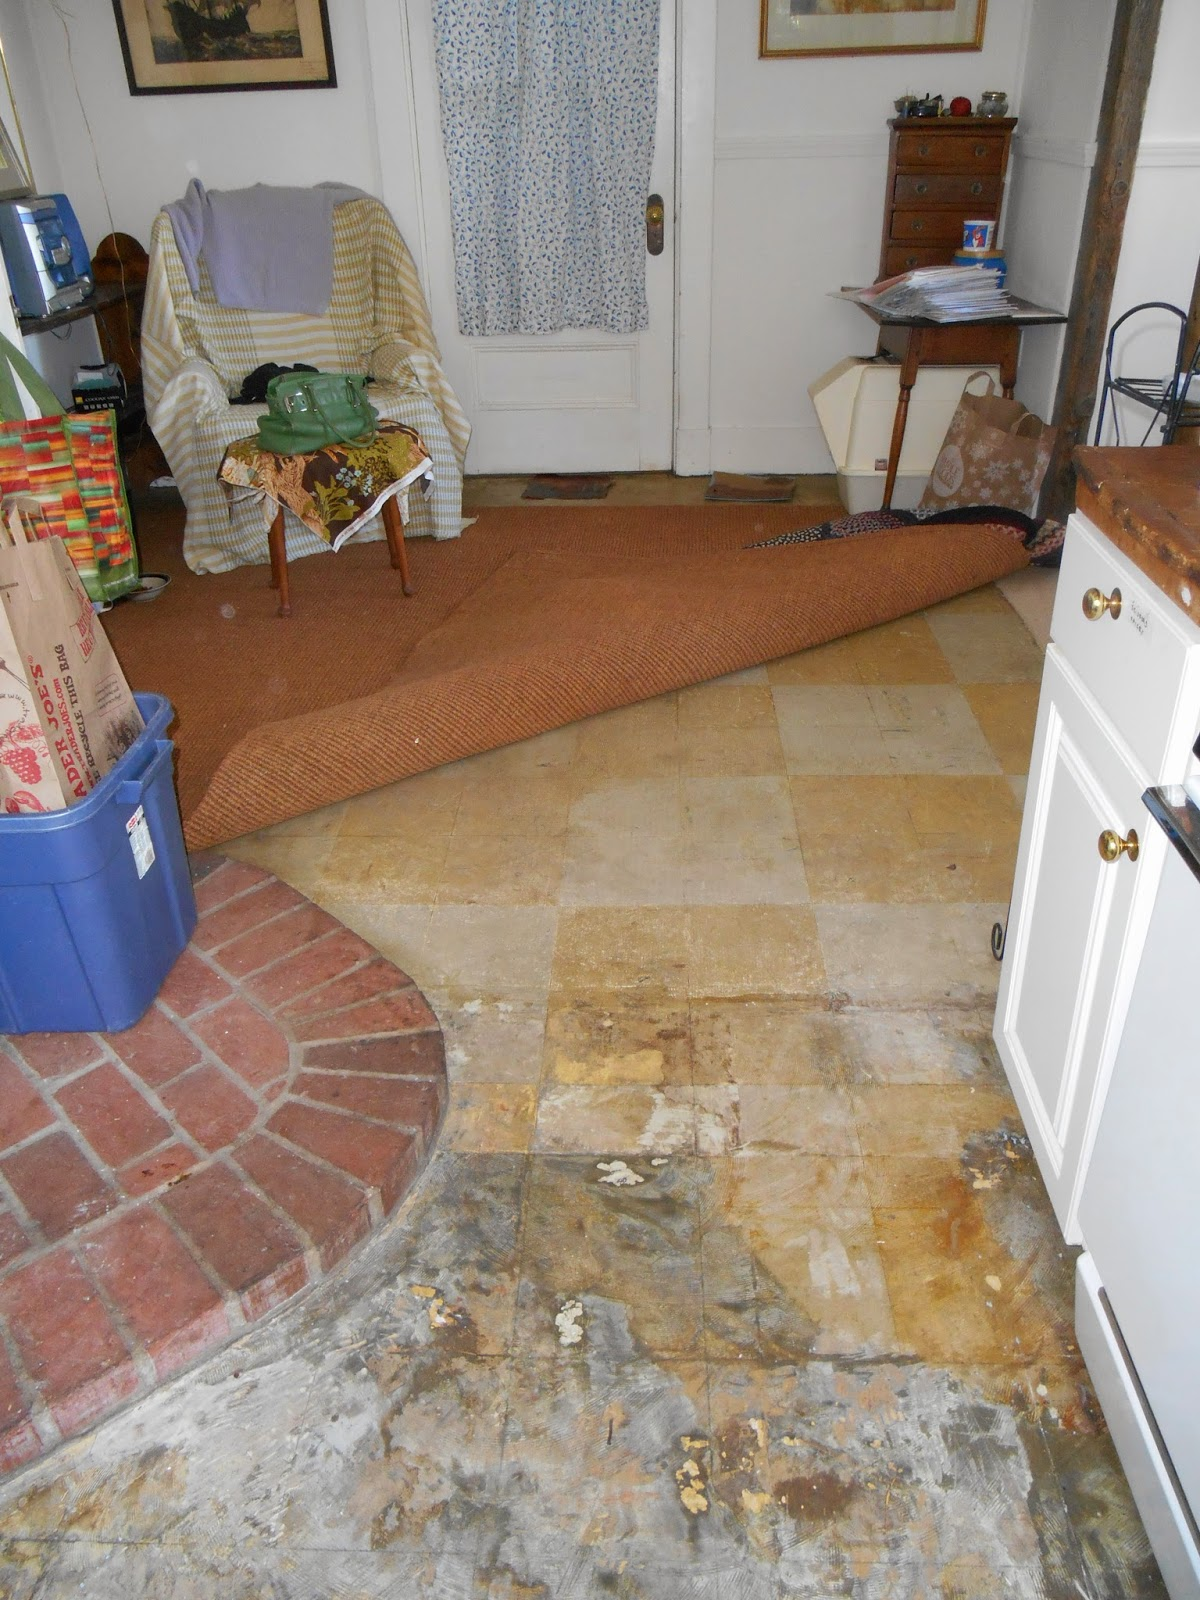 A Paper Bag Floor Over Asbestos Linoleum